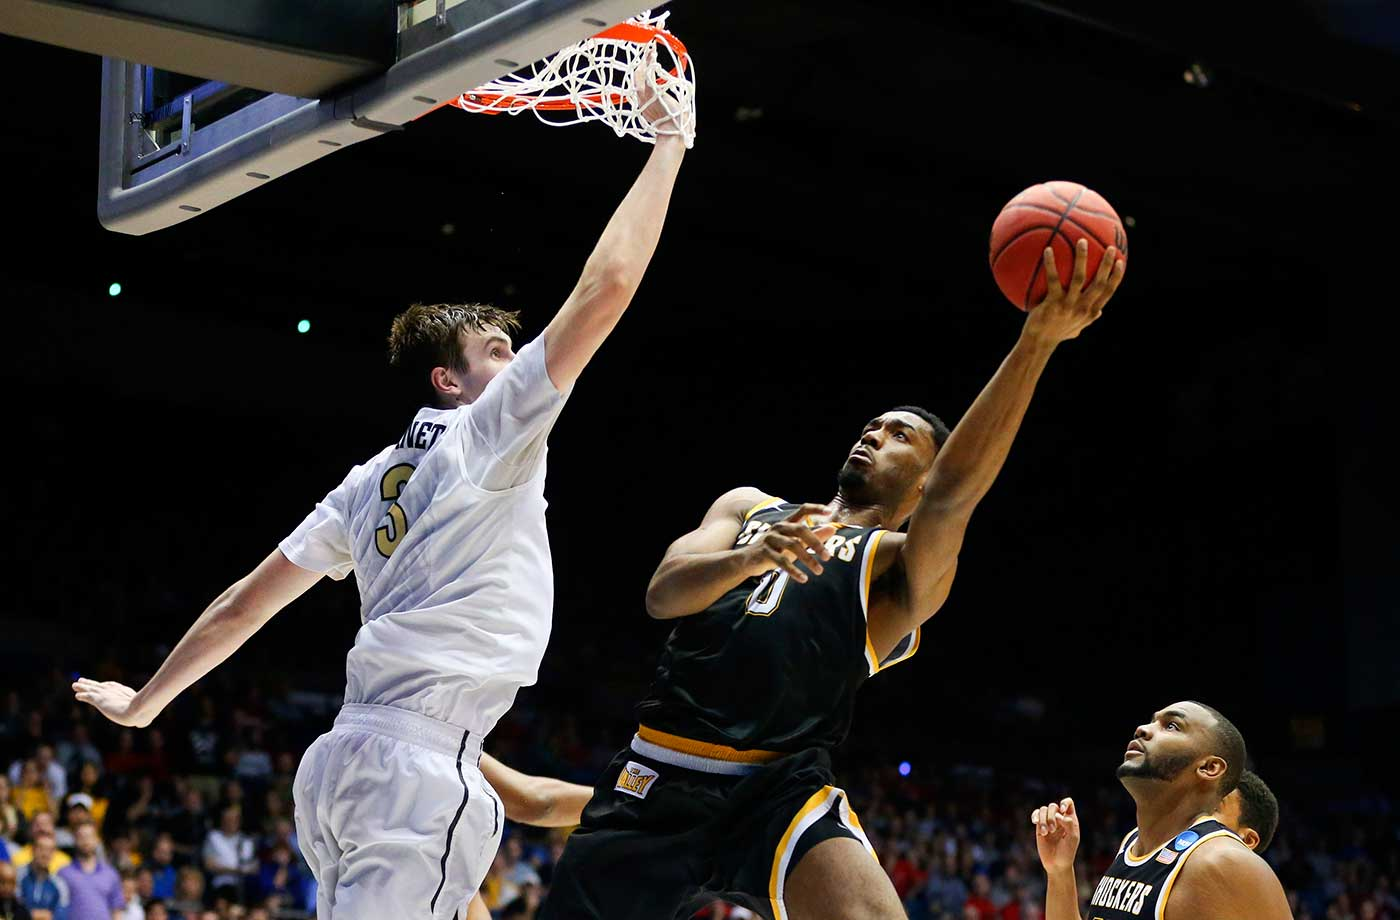 Wichita State's Rashard Kelly goes to the basket against Vanderbilt's Luke Kornet.